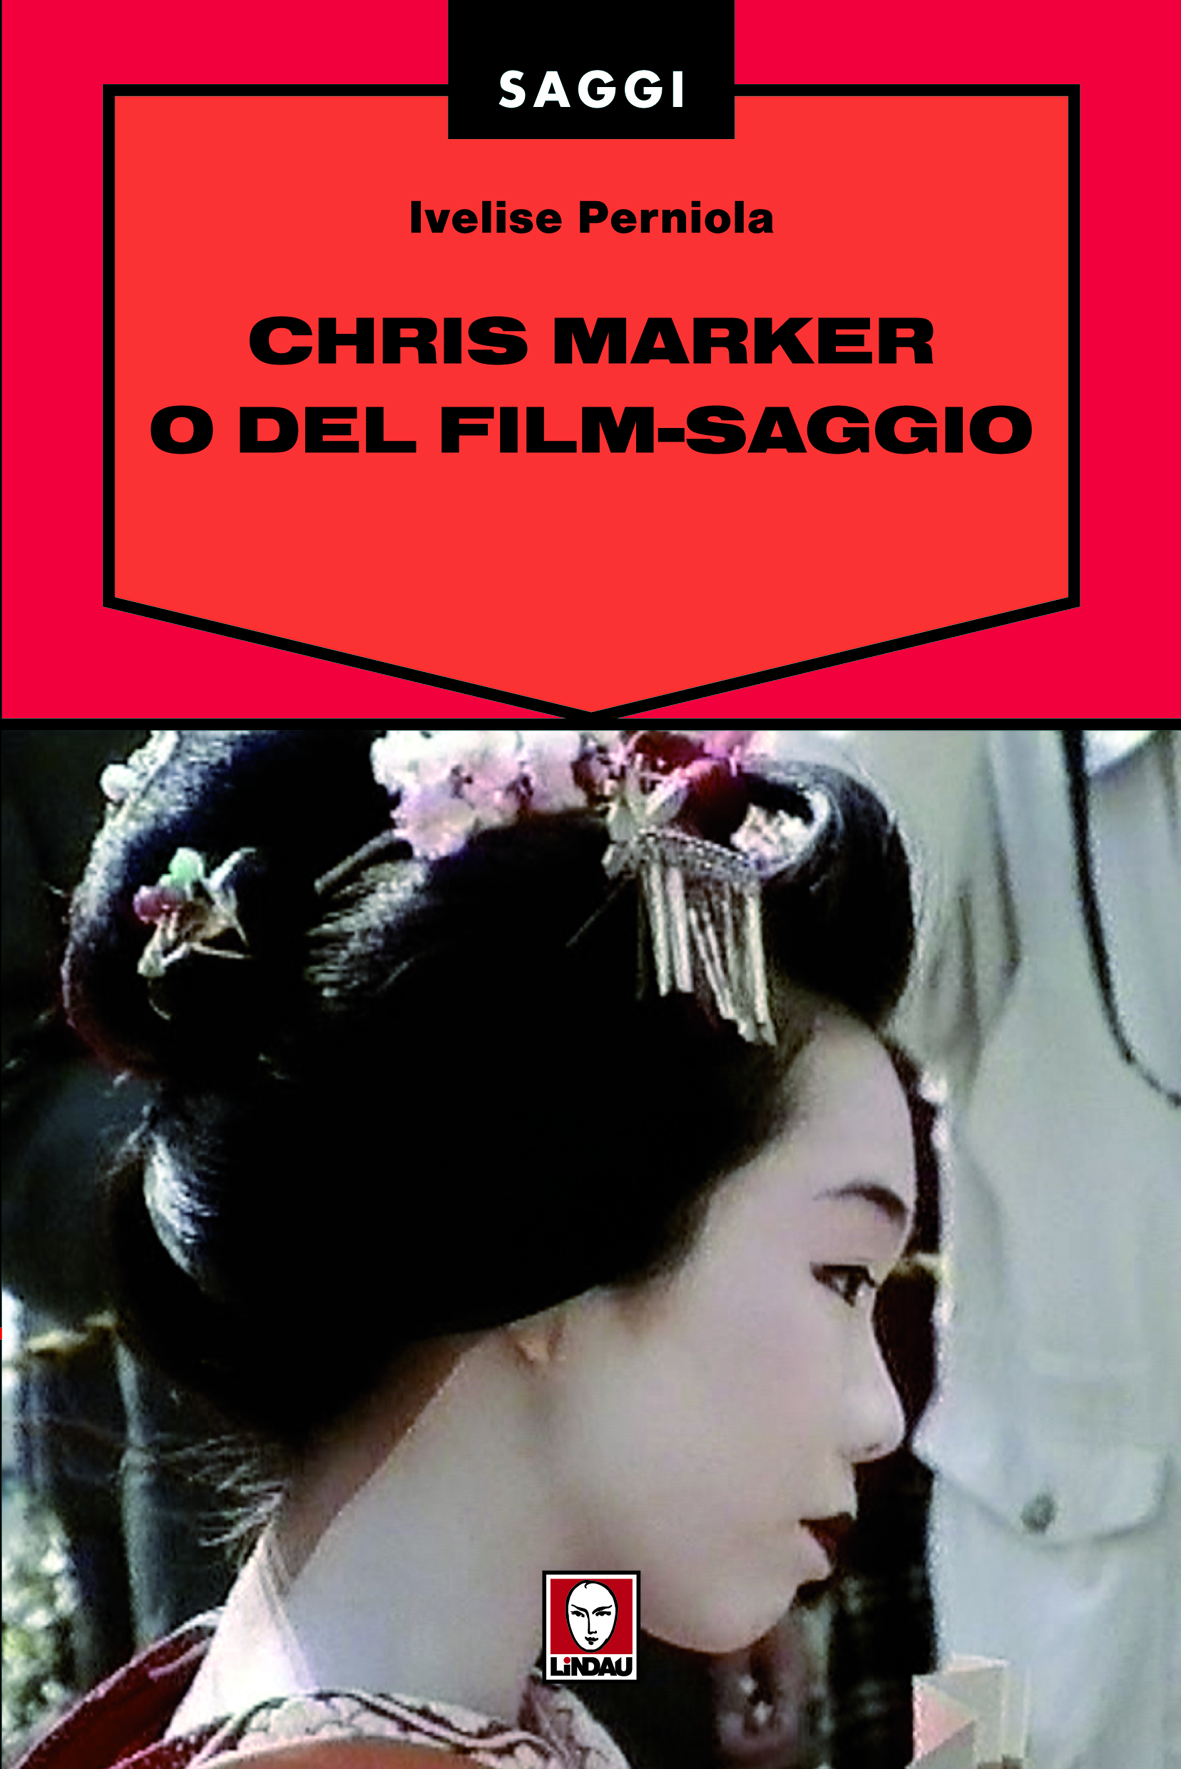 chris marker film essay The late filmmaker chris marker's fascination with the recurring graffiti of a grinning yellow cat on the streets of chris marker and the art of the essay-film.